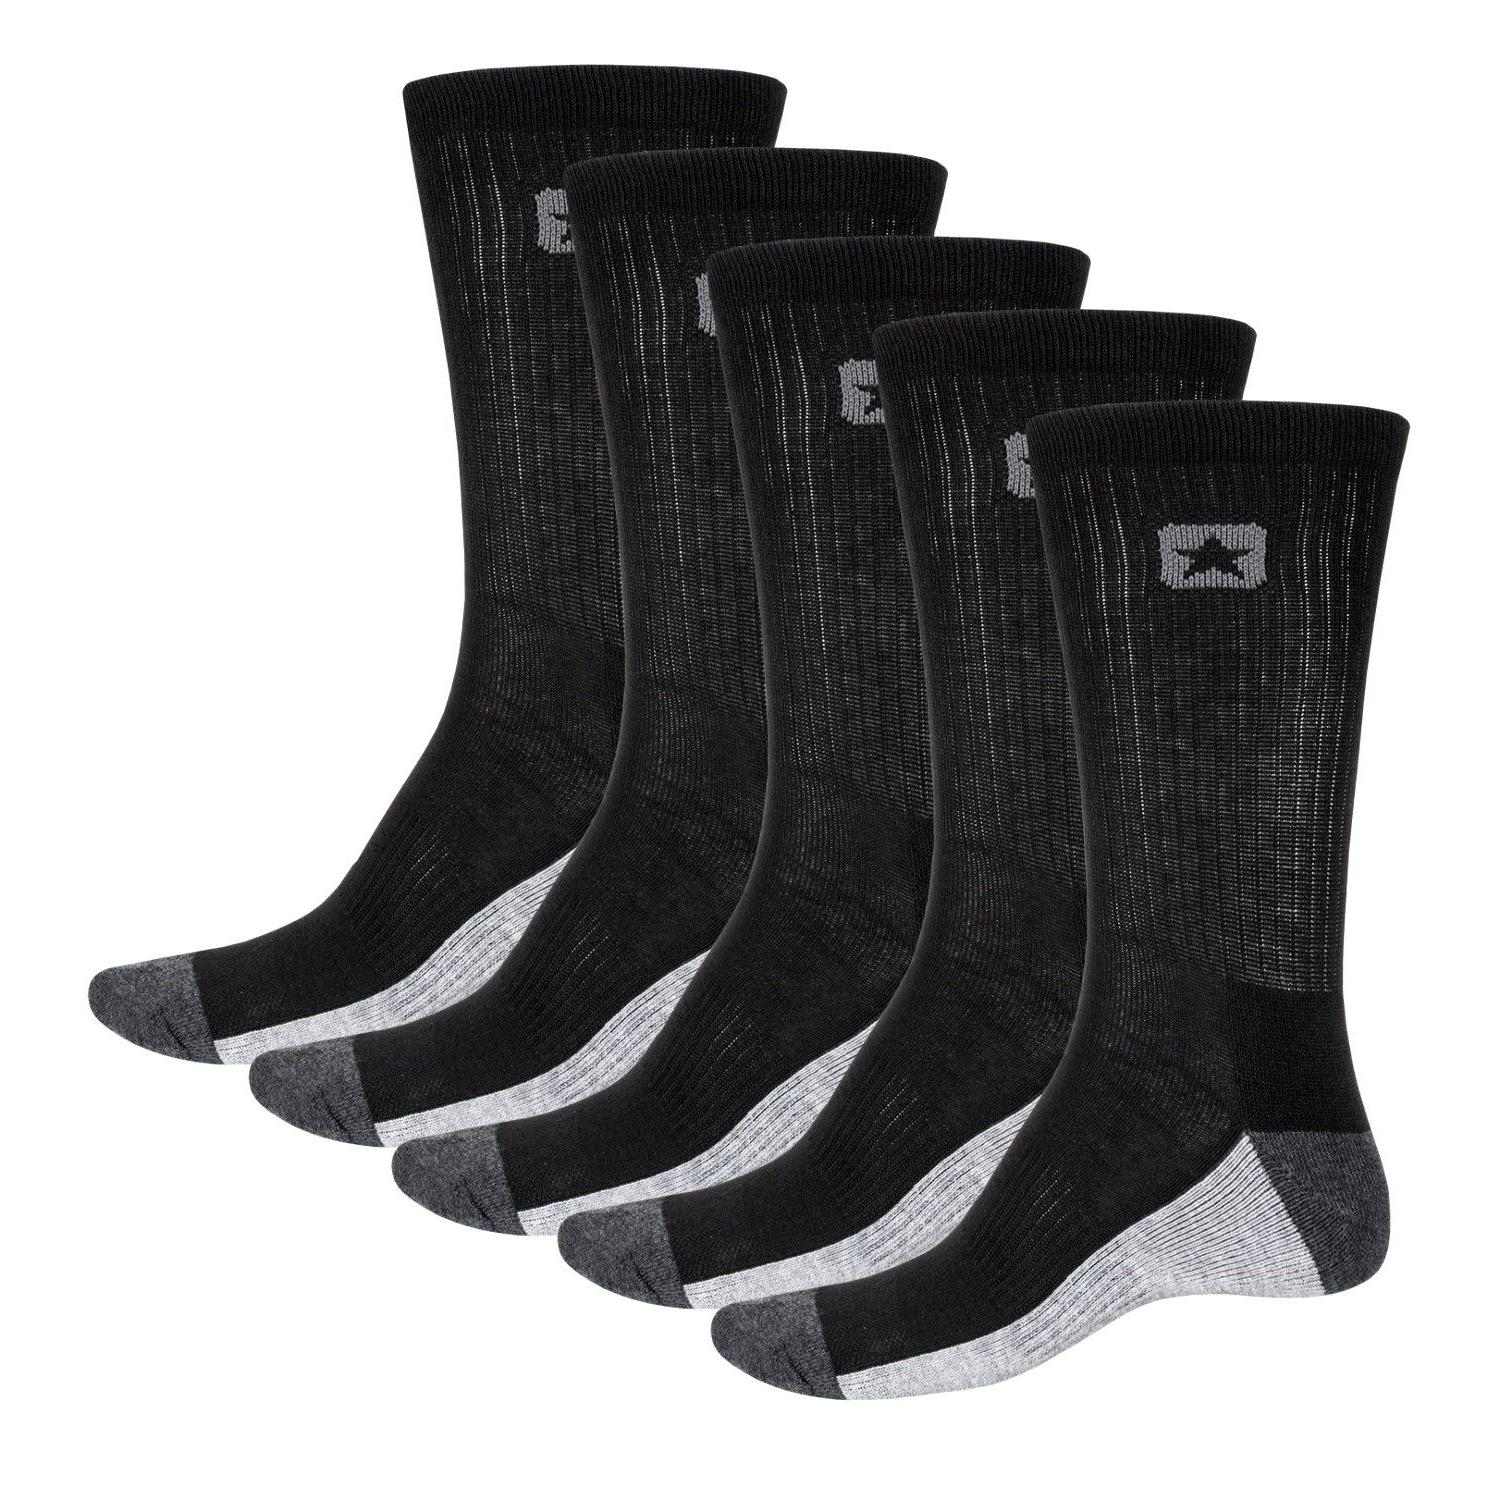 Converse Half Cushion Men's Crew Socks Black Gray 5 Pairs Pa